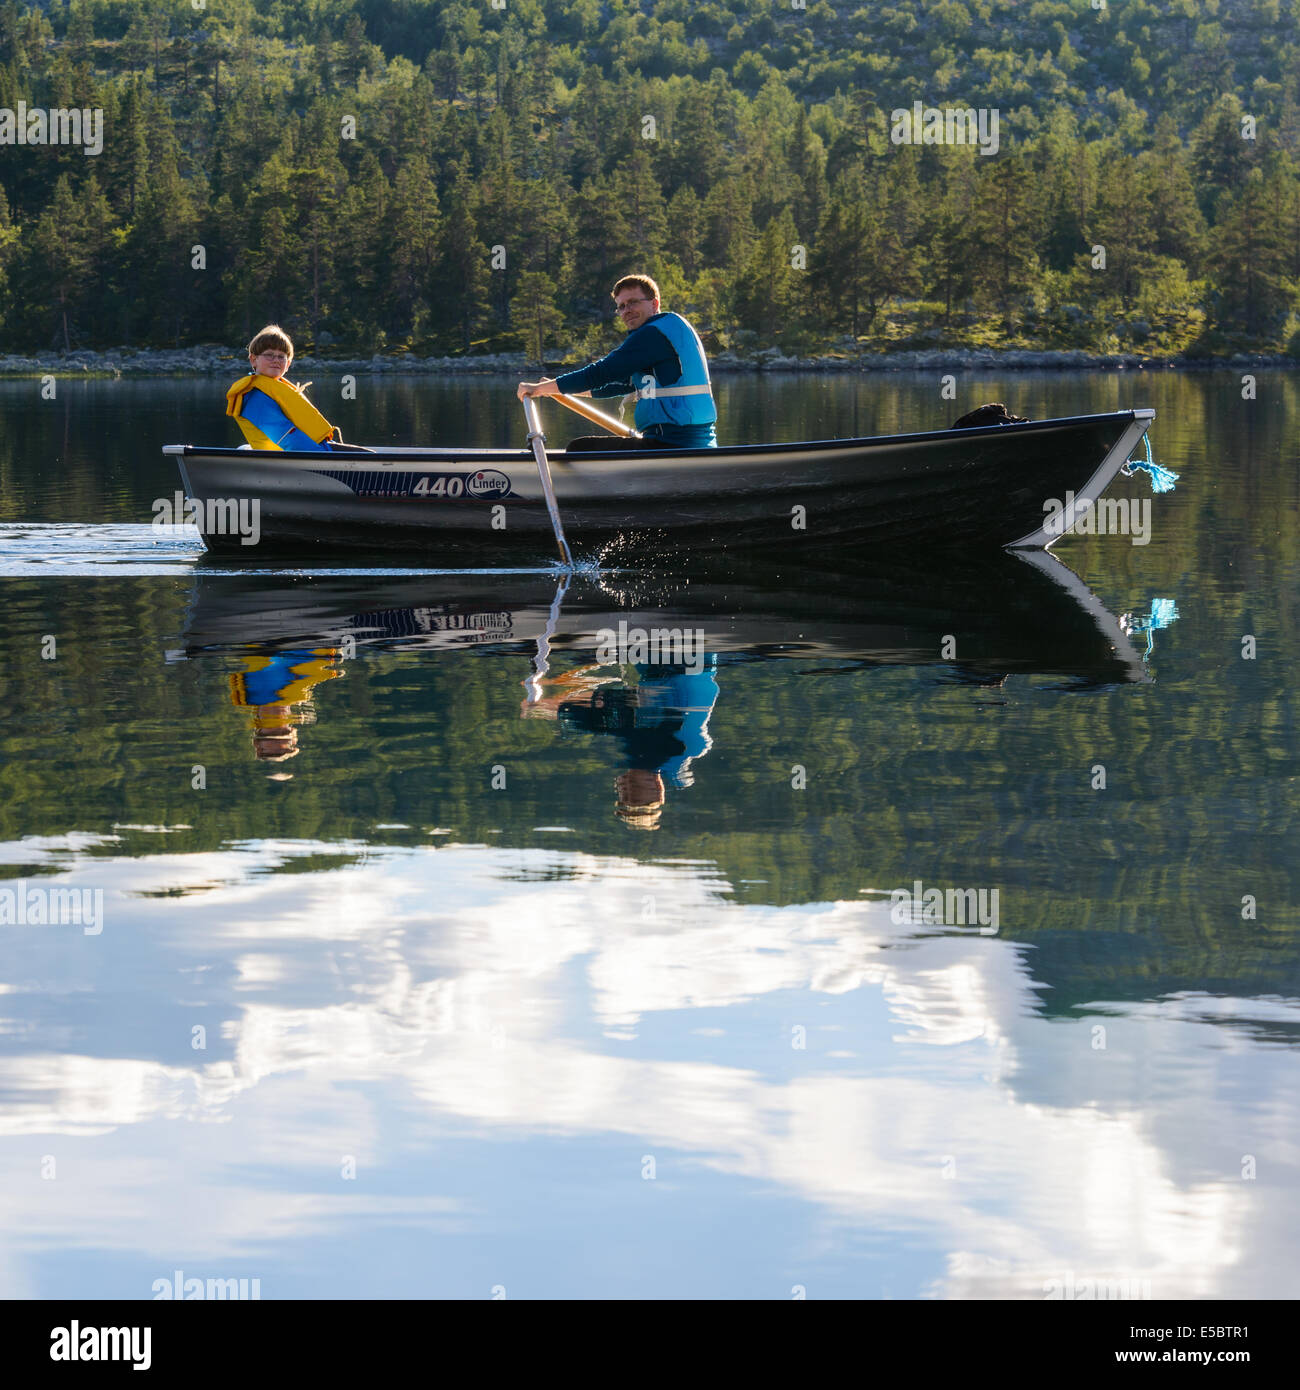 Two people rowing a small boat on lake, Dalarna Stock Photo